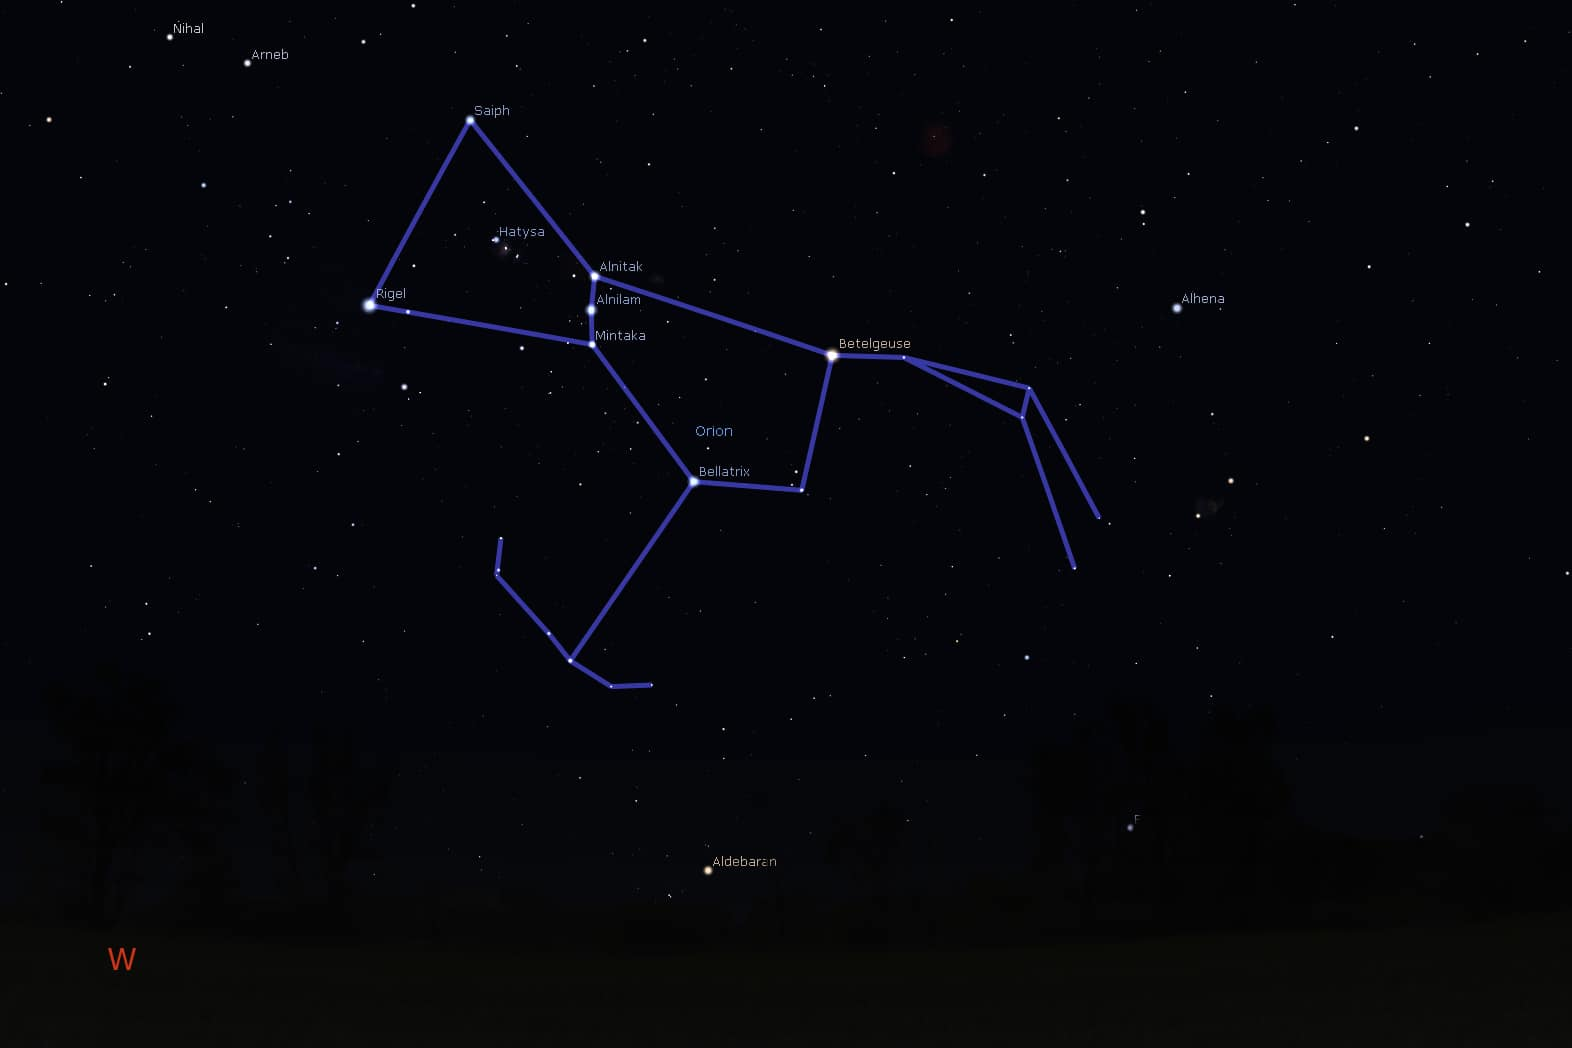 Orion setting from mid-southern latitudes (Sydney, Australia) during late April evenings. Image courtesy of Stellarium.